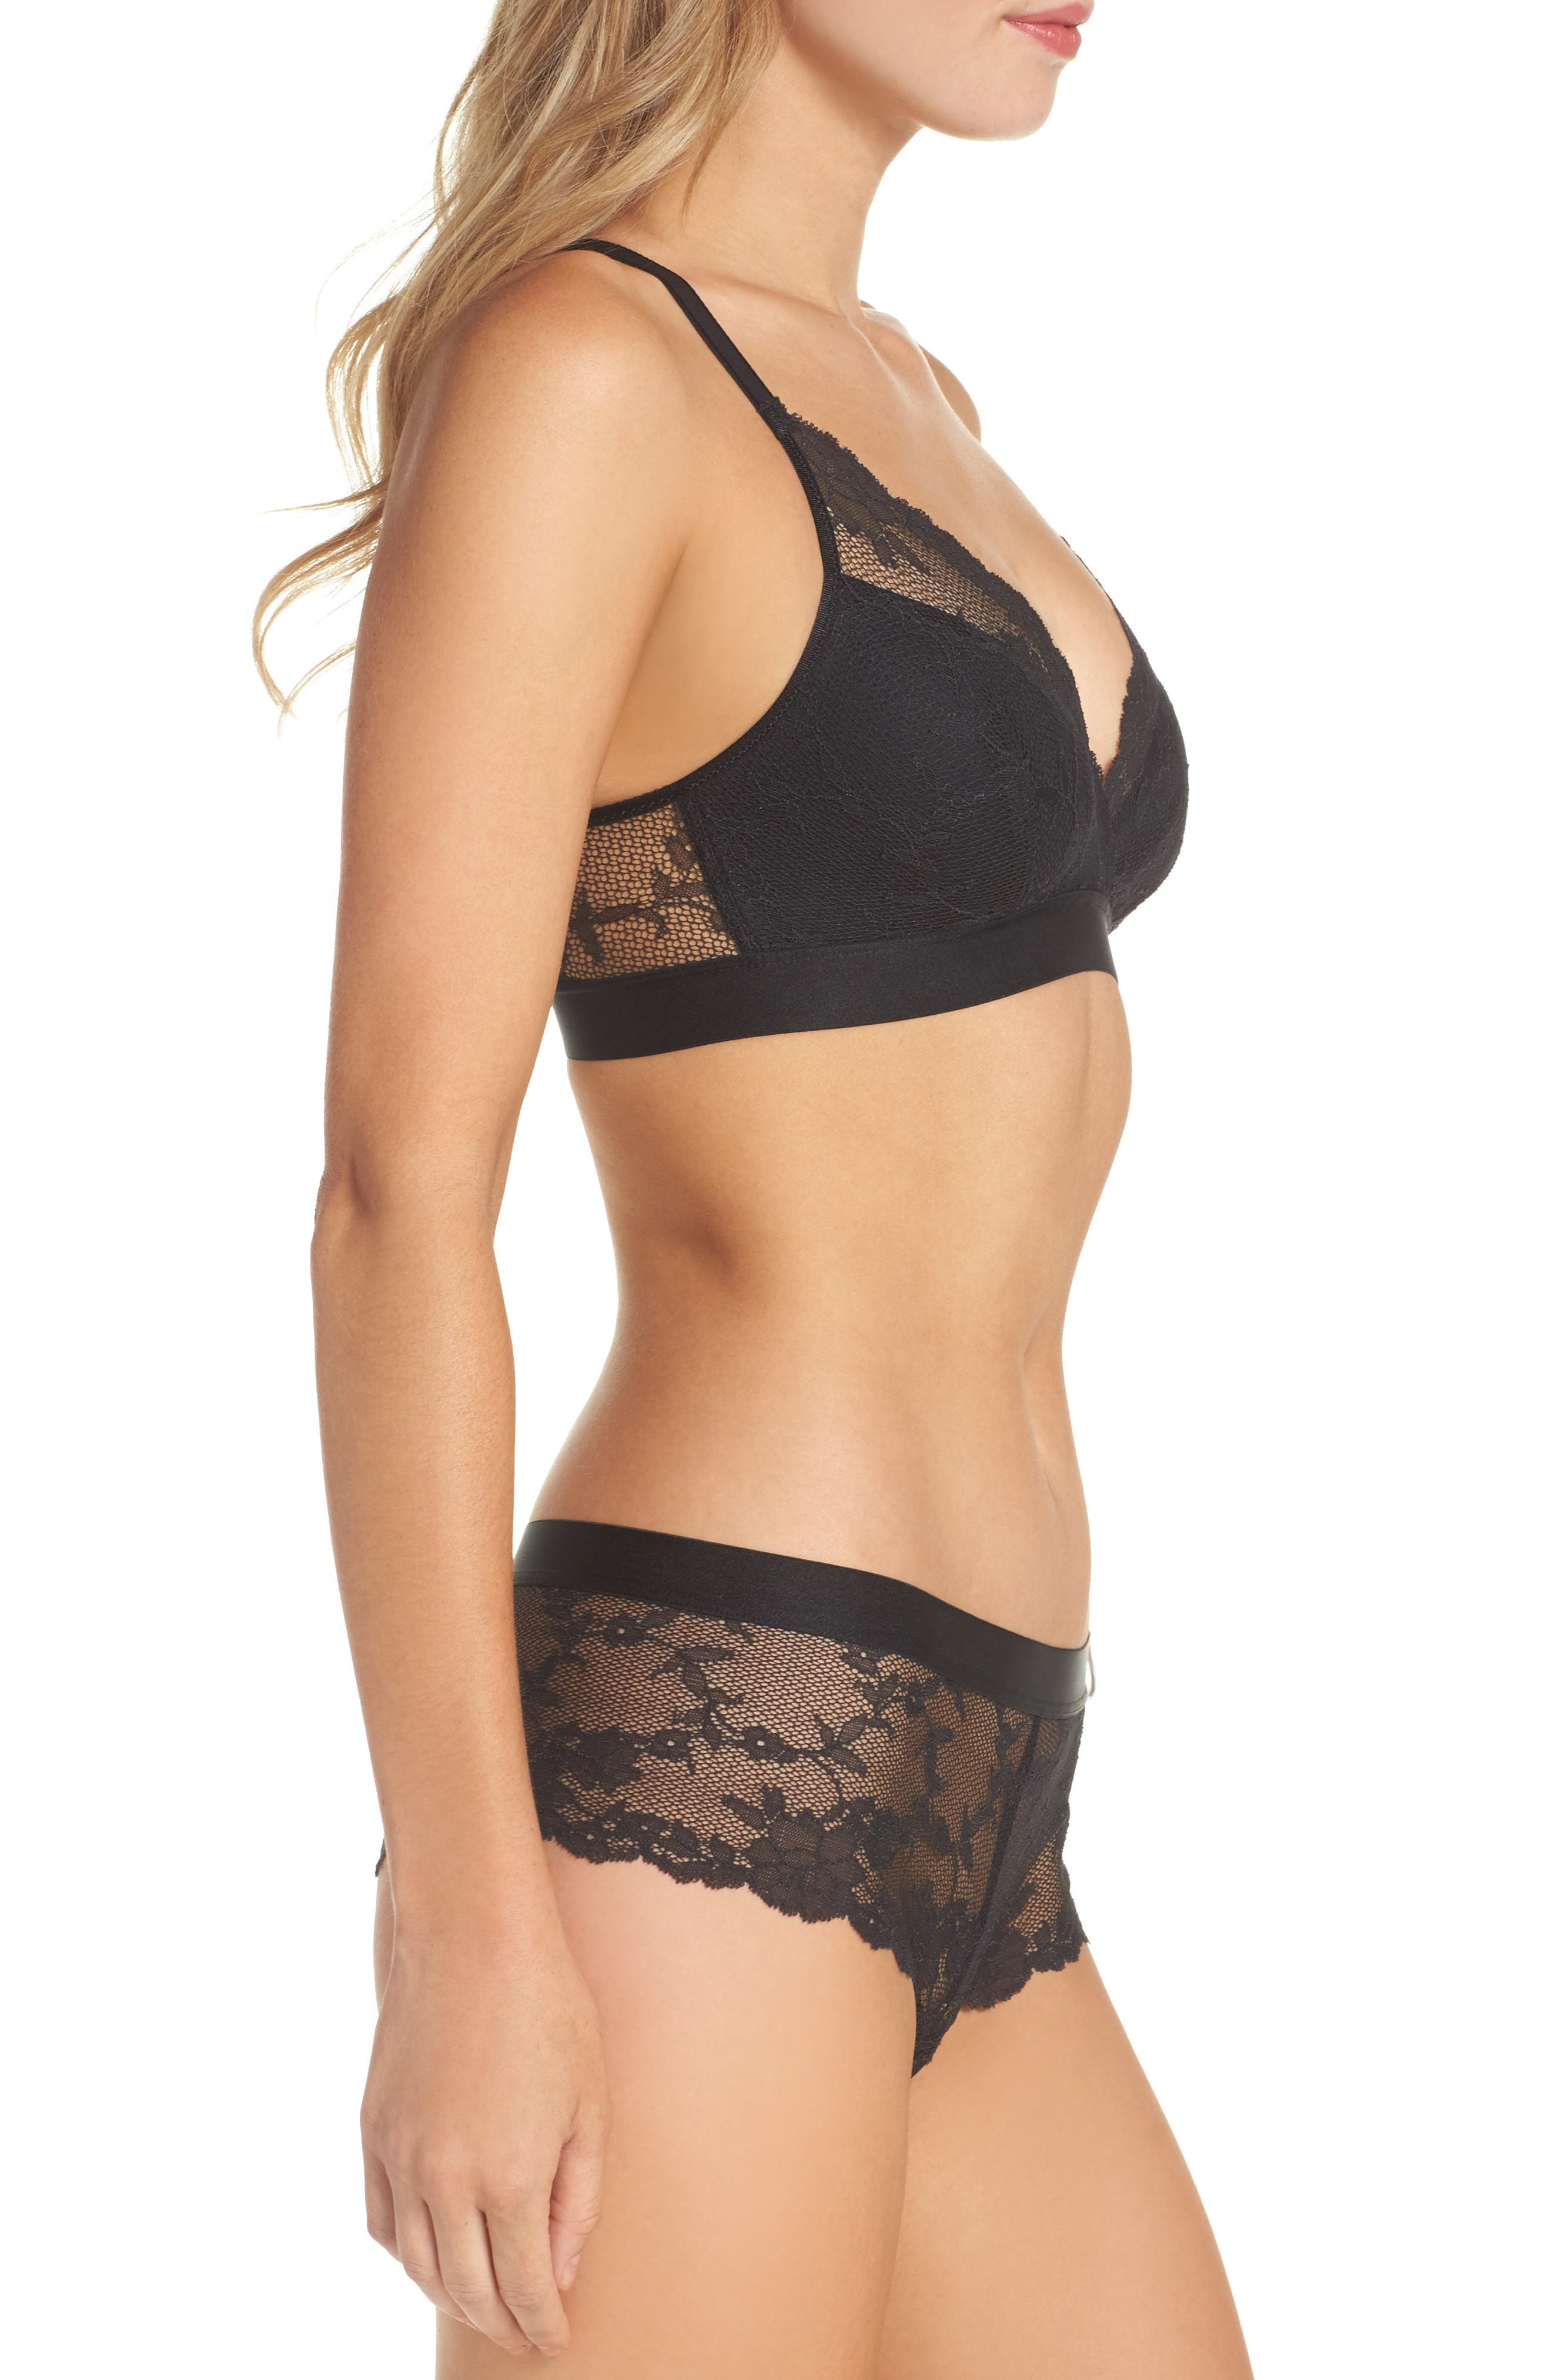 Everyday Lace Hipster Panties,                             Alternate thumbnail 7, color,                             Black